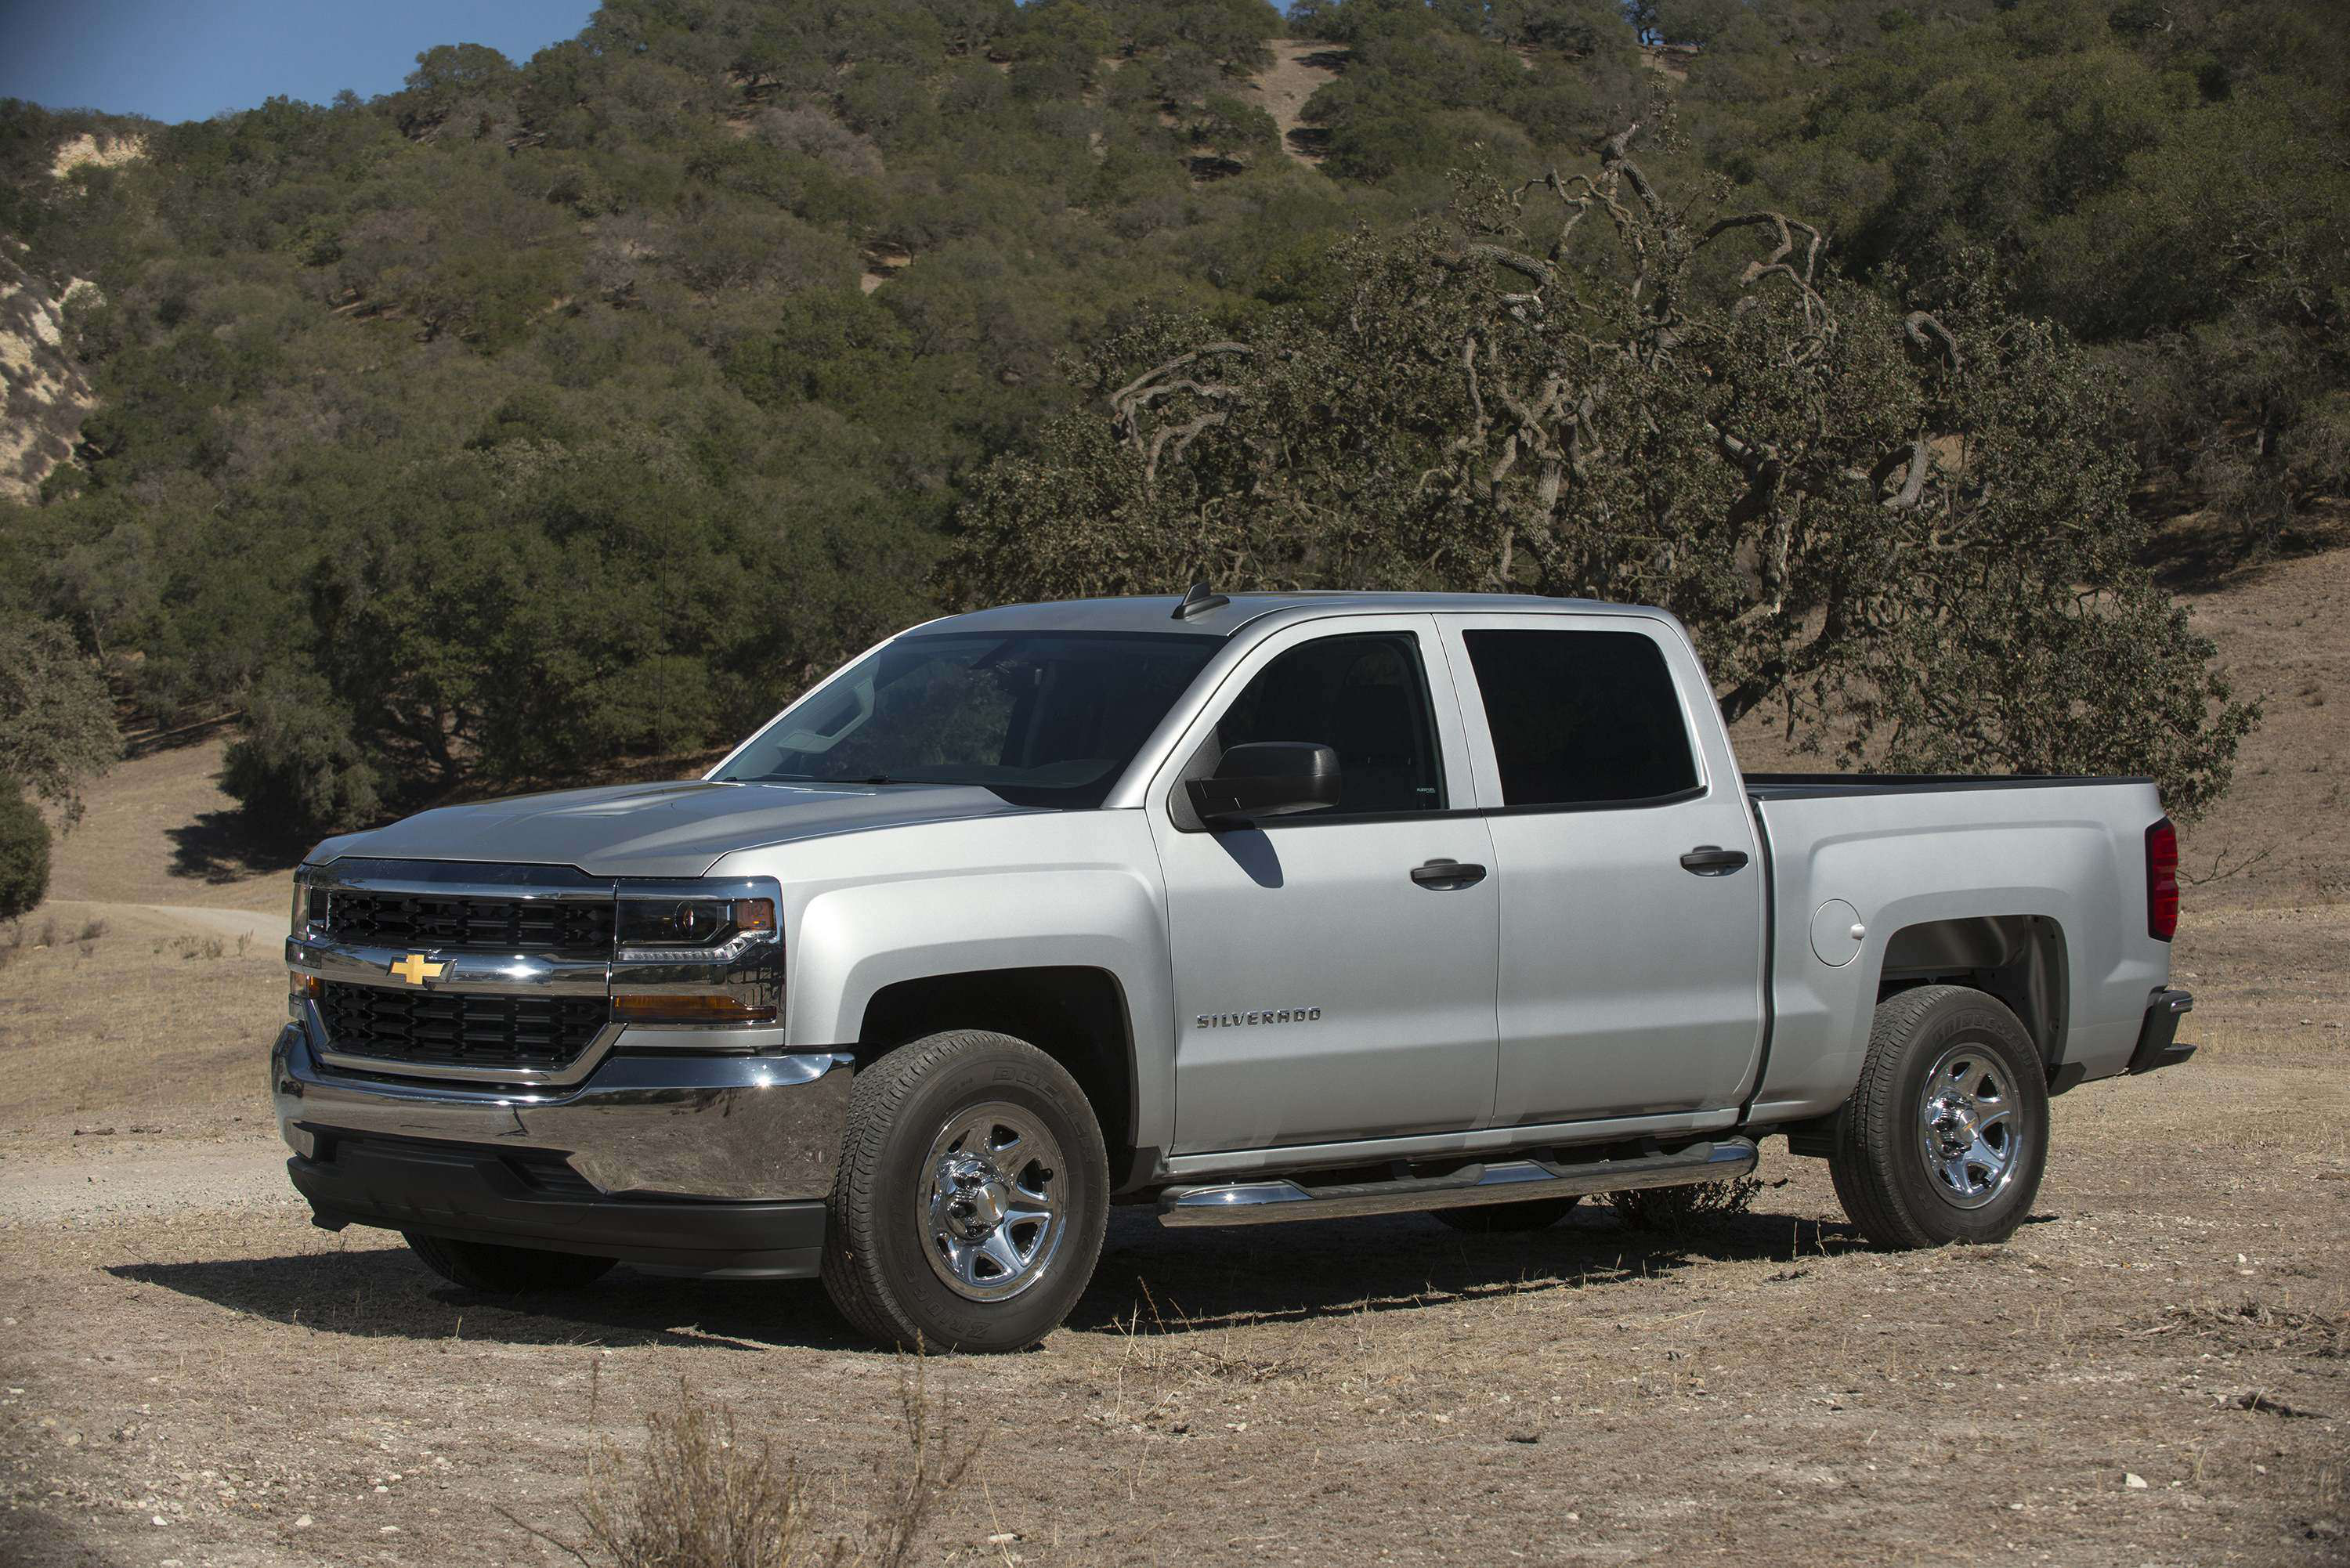 2015 2017 Chevy Silverado Gmc Sierra Pickups Recalled Due To Radio Upgrade 2016 Chevrolet 040